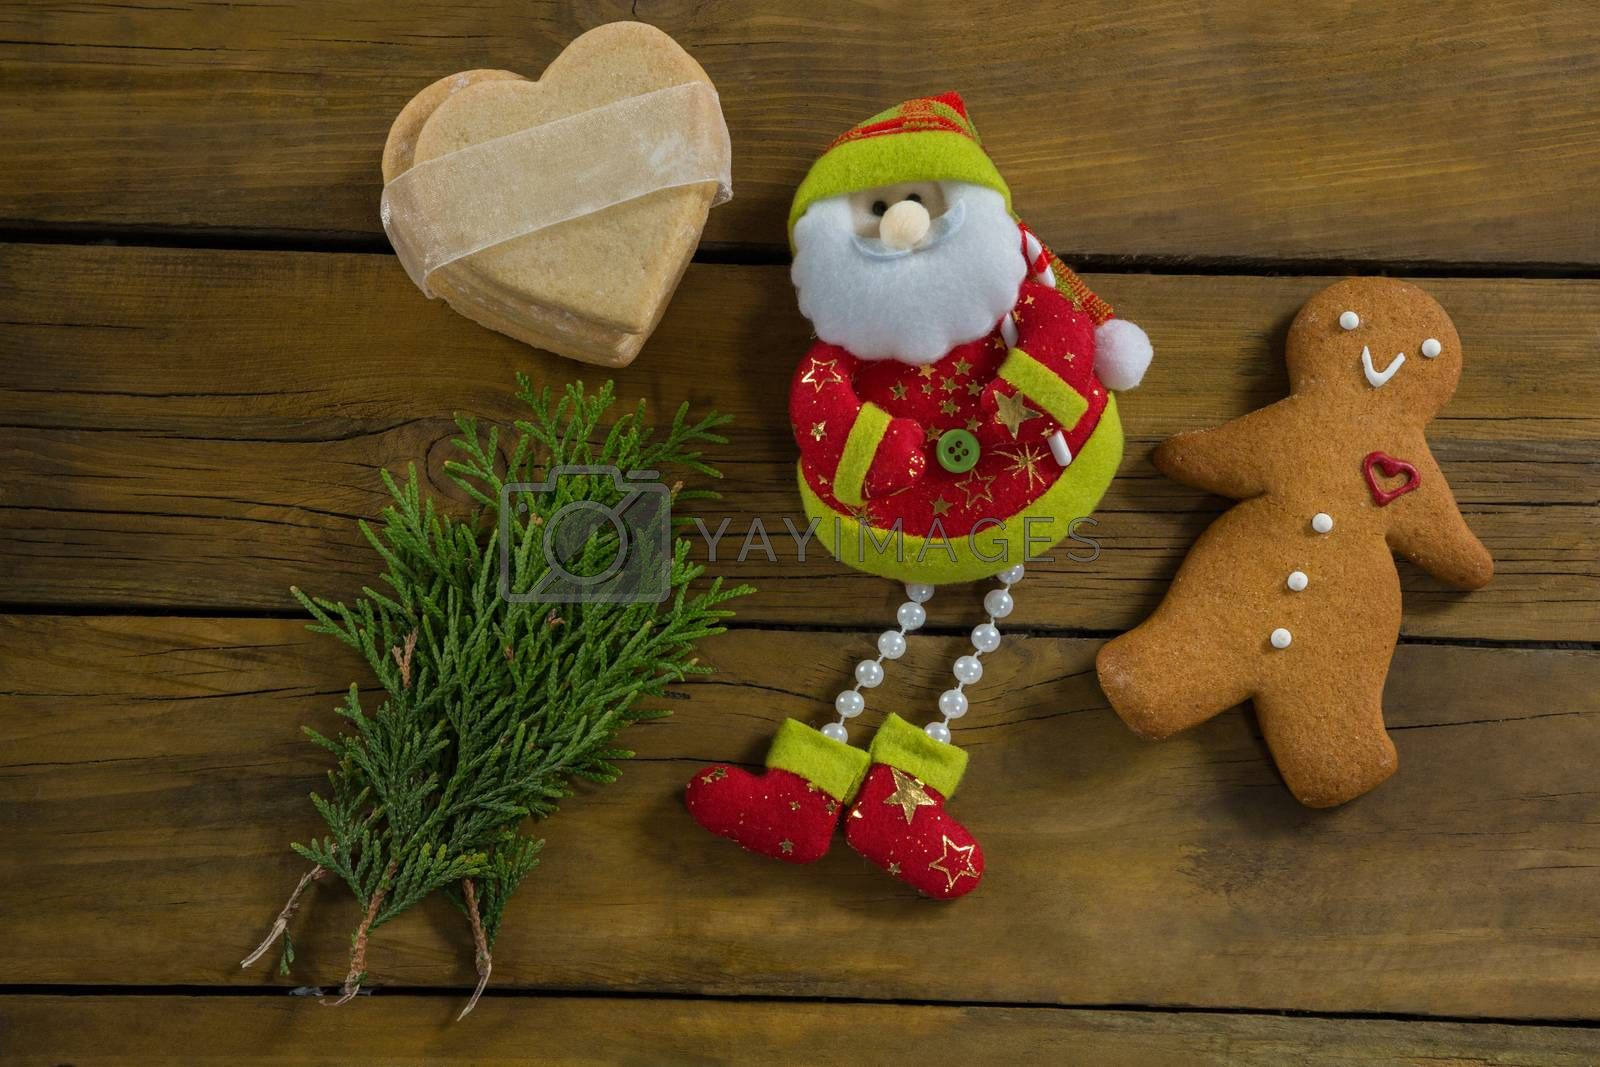 Overhead view of santa claus by twigs gingerbread man by Wavebreakmedia